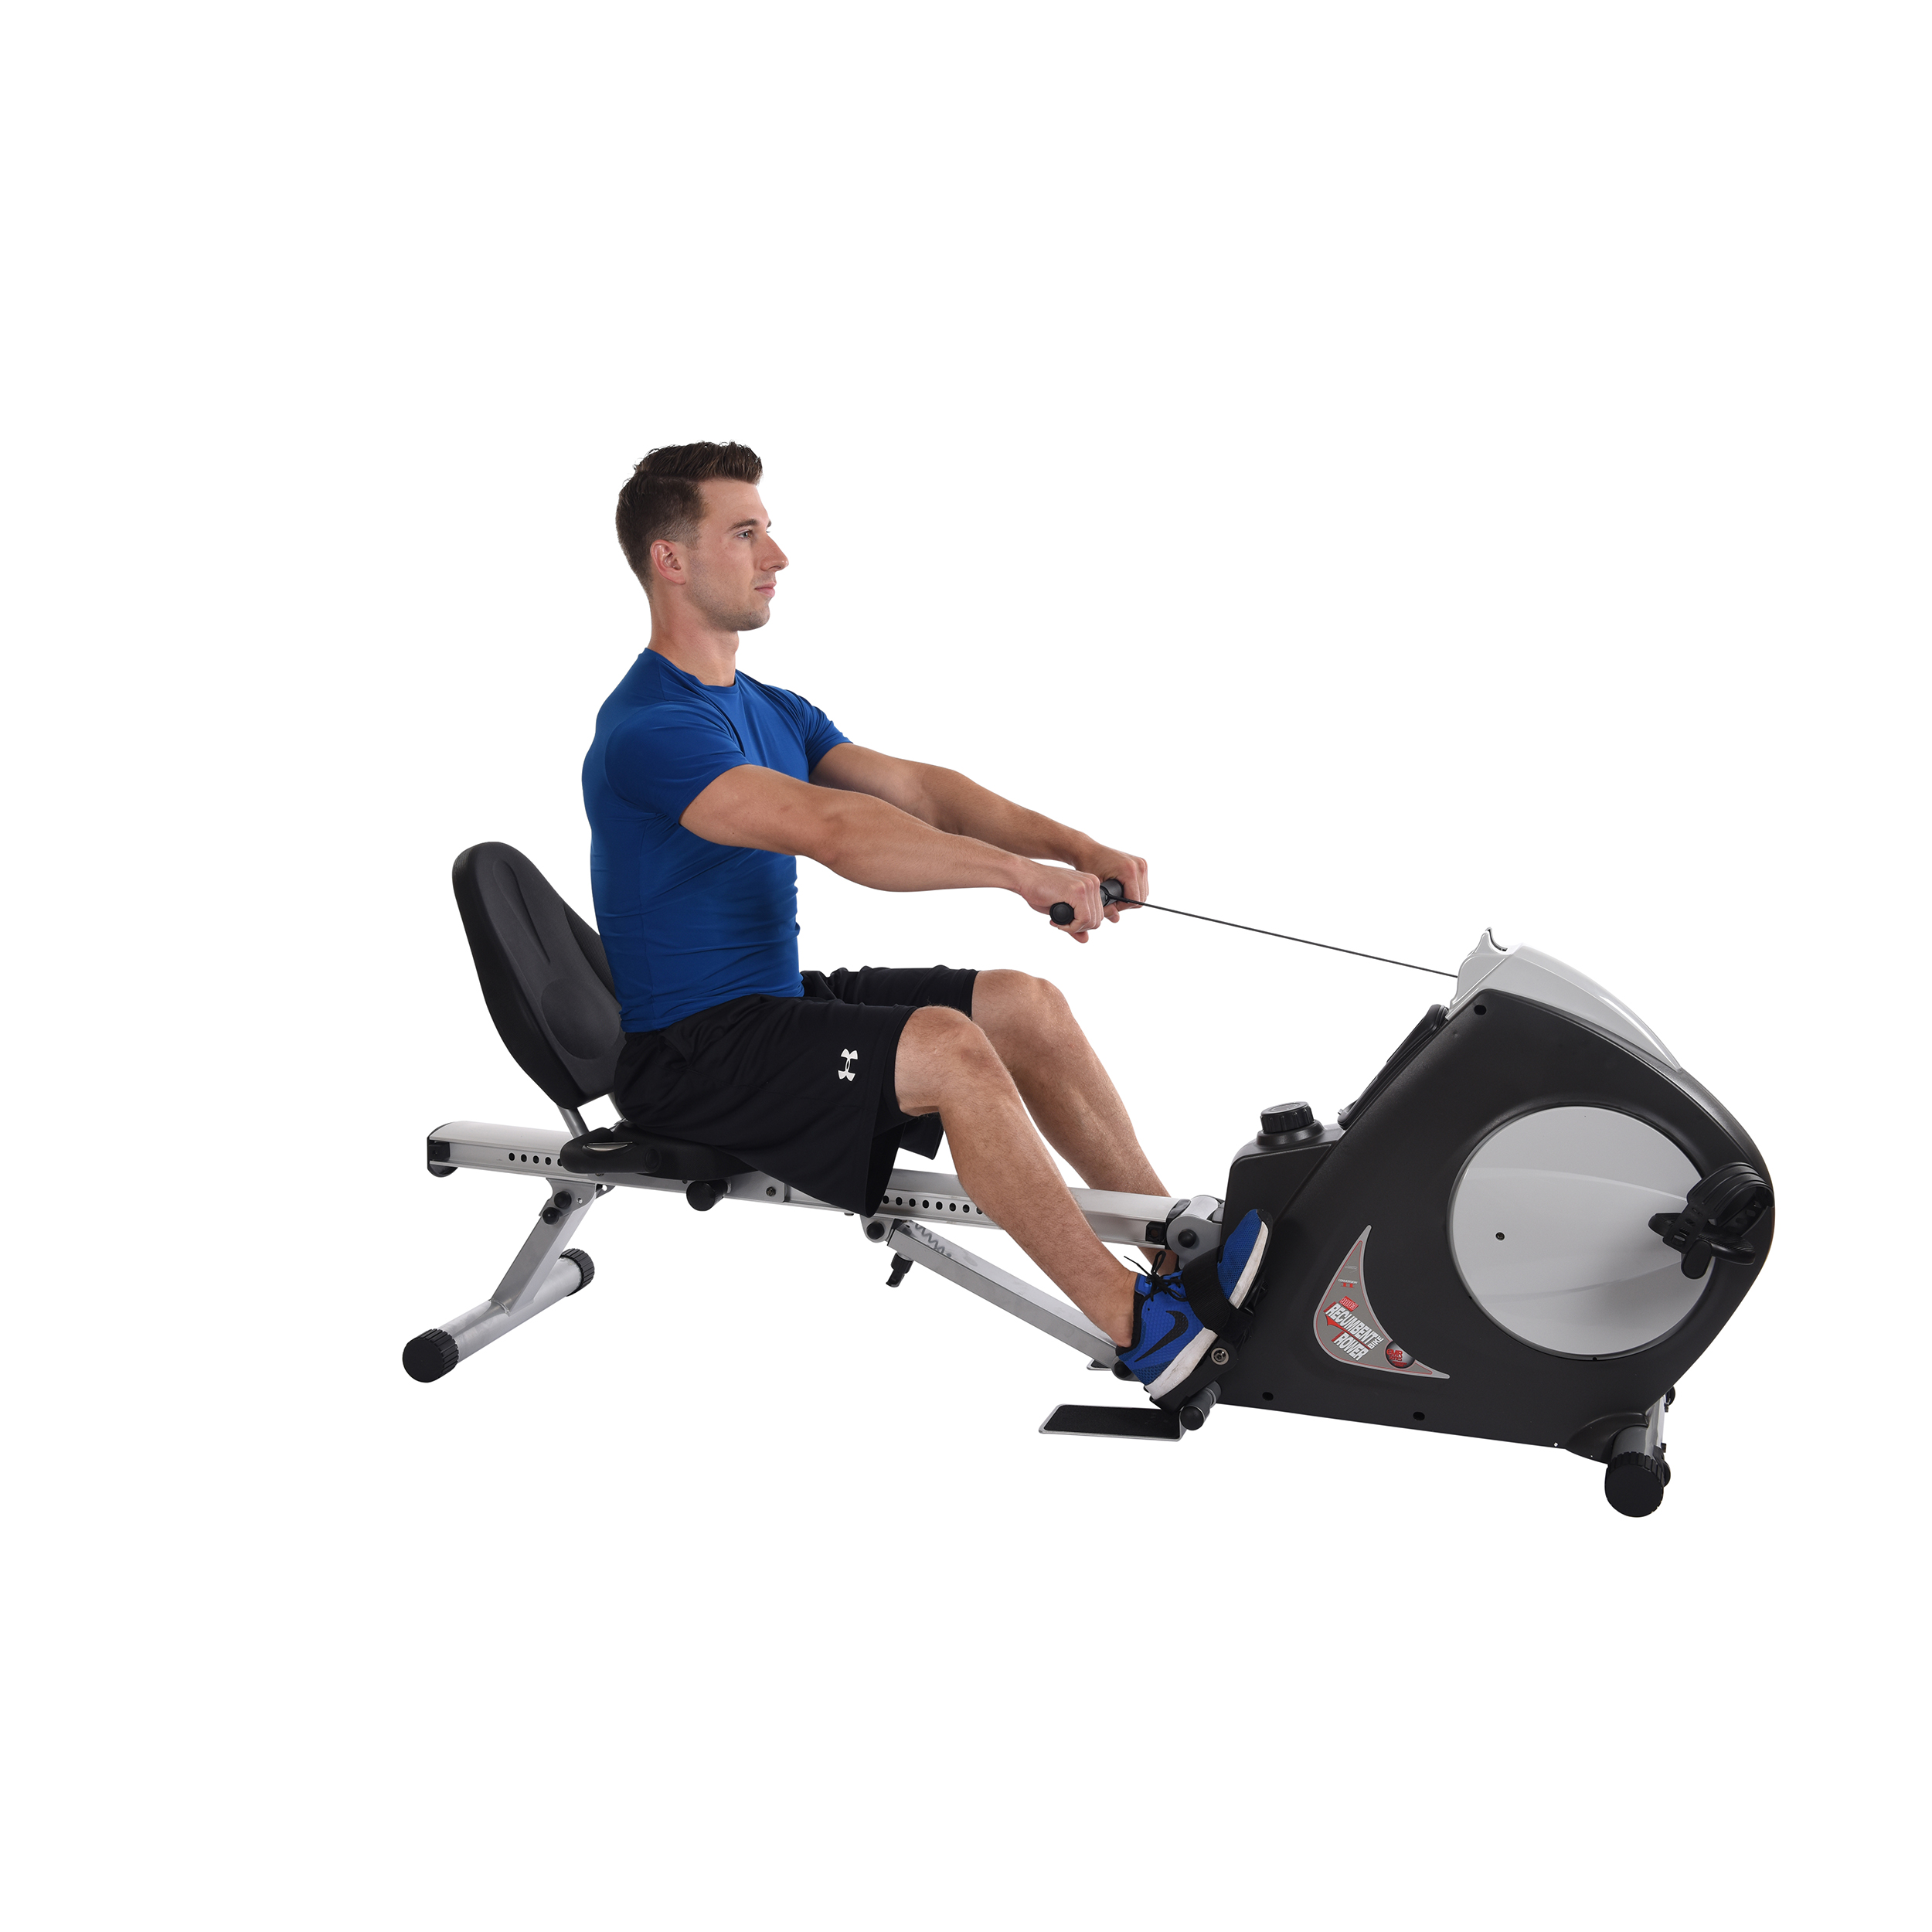 body break recumbent exercise bike manual